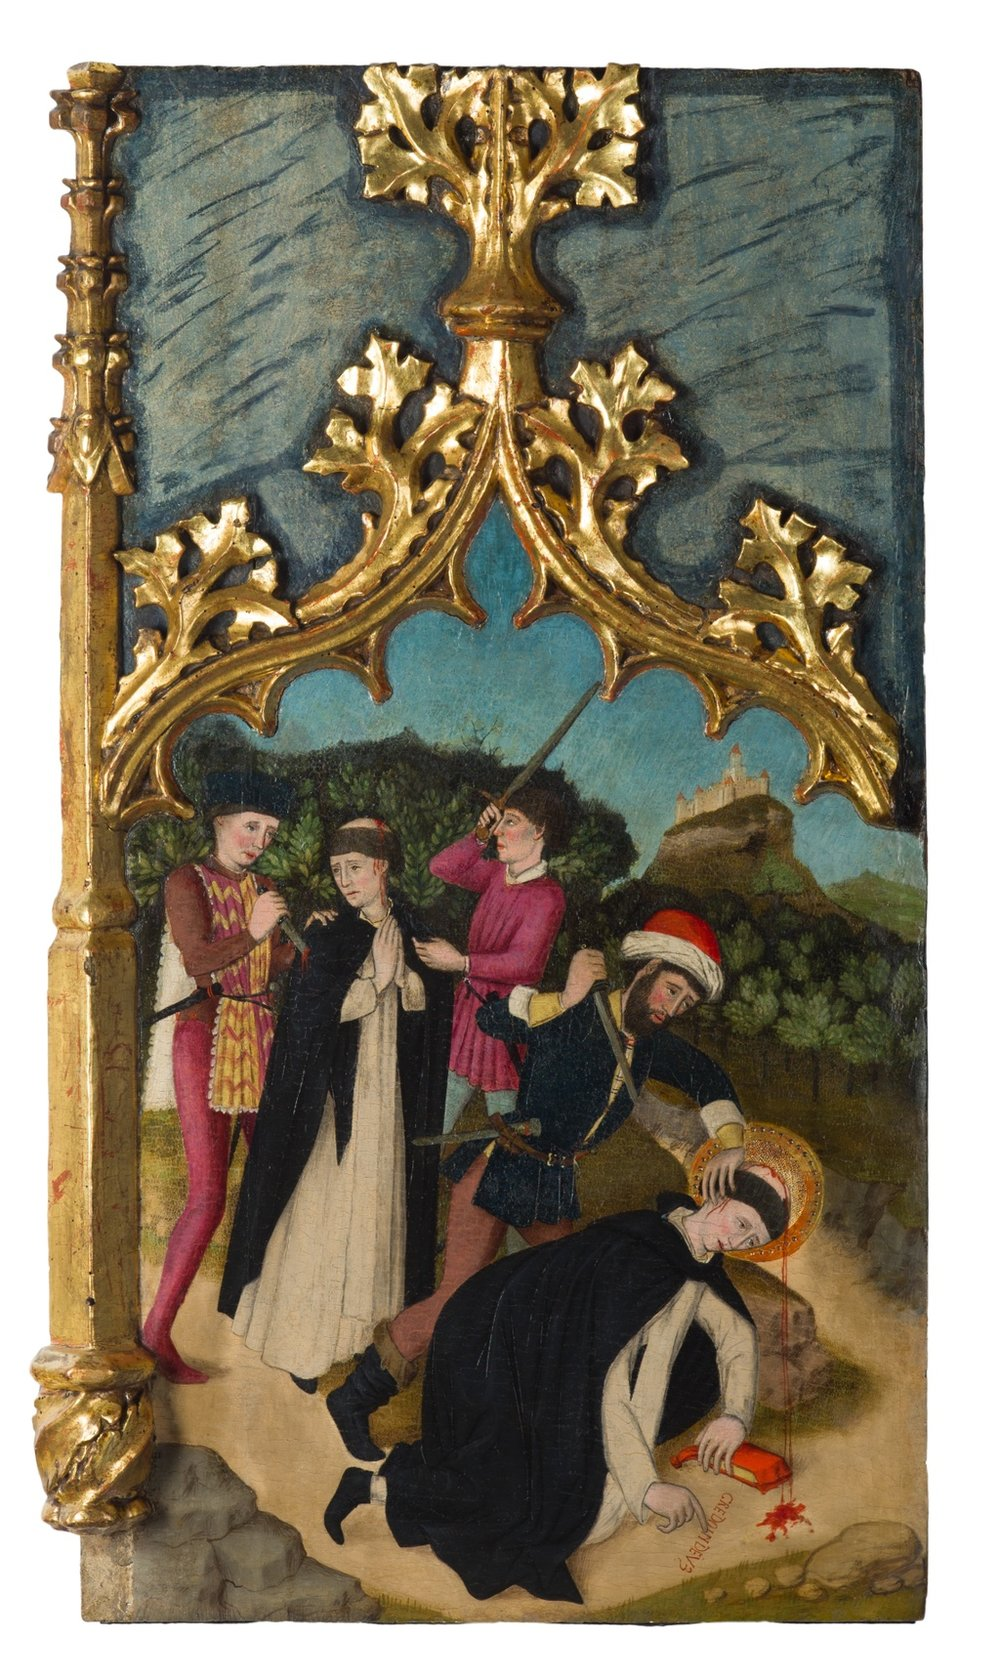 261_Joan Figuera_The retable of The Virgin. Saint Peter Martyr. and Saint Mark_Egg tempera on panel_261 x 249 cm. 102 ¾ x 98 in._thumbnail.jpg